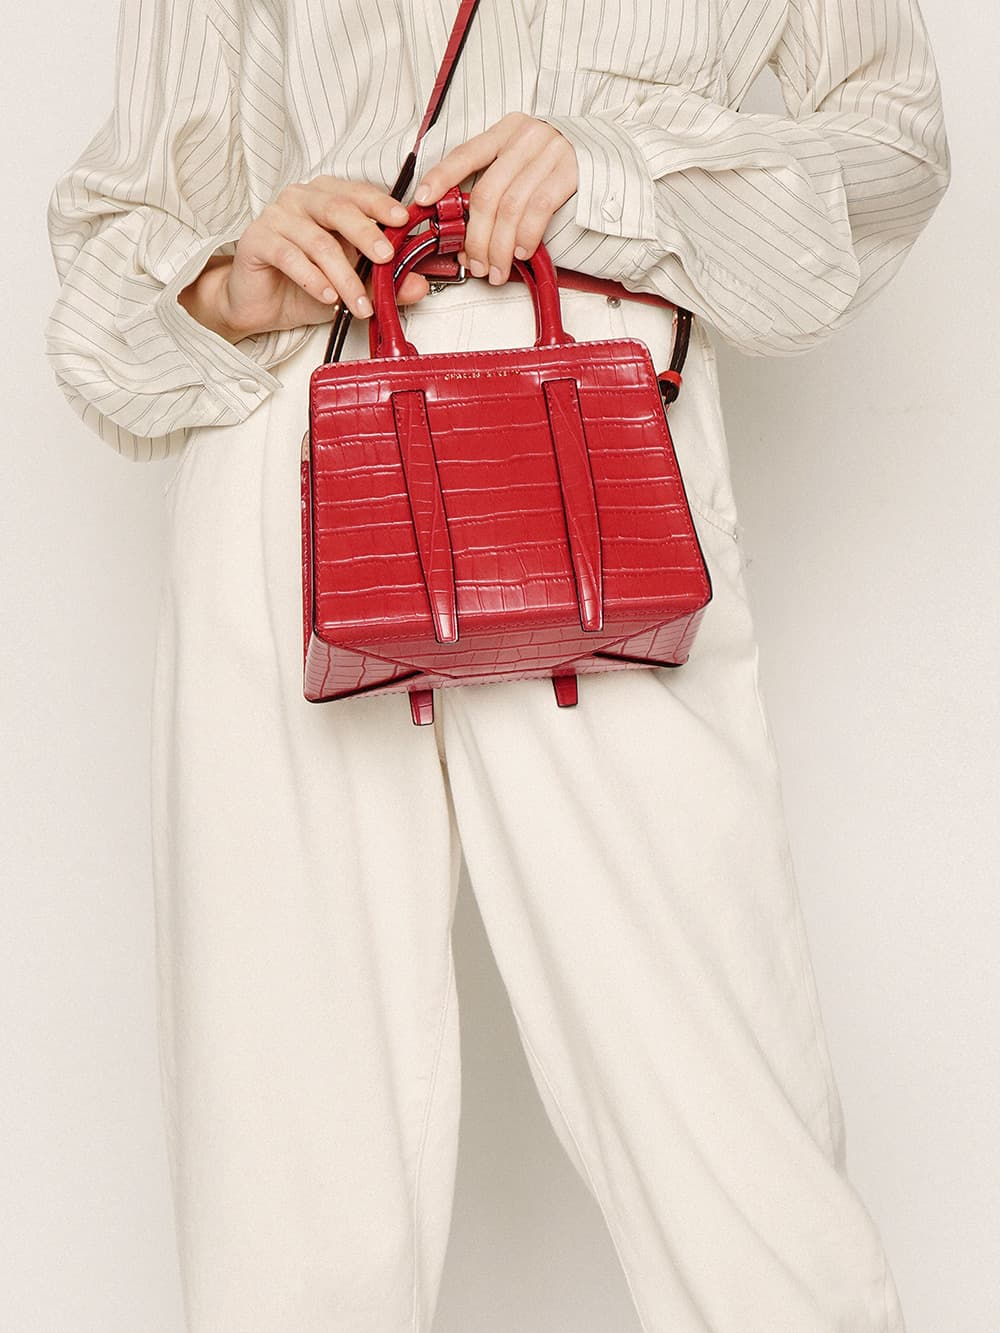 Women's red croc-effect top handle bag - CHARLES & KEITH